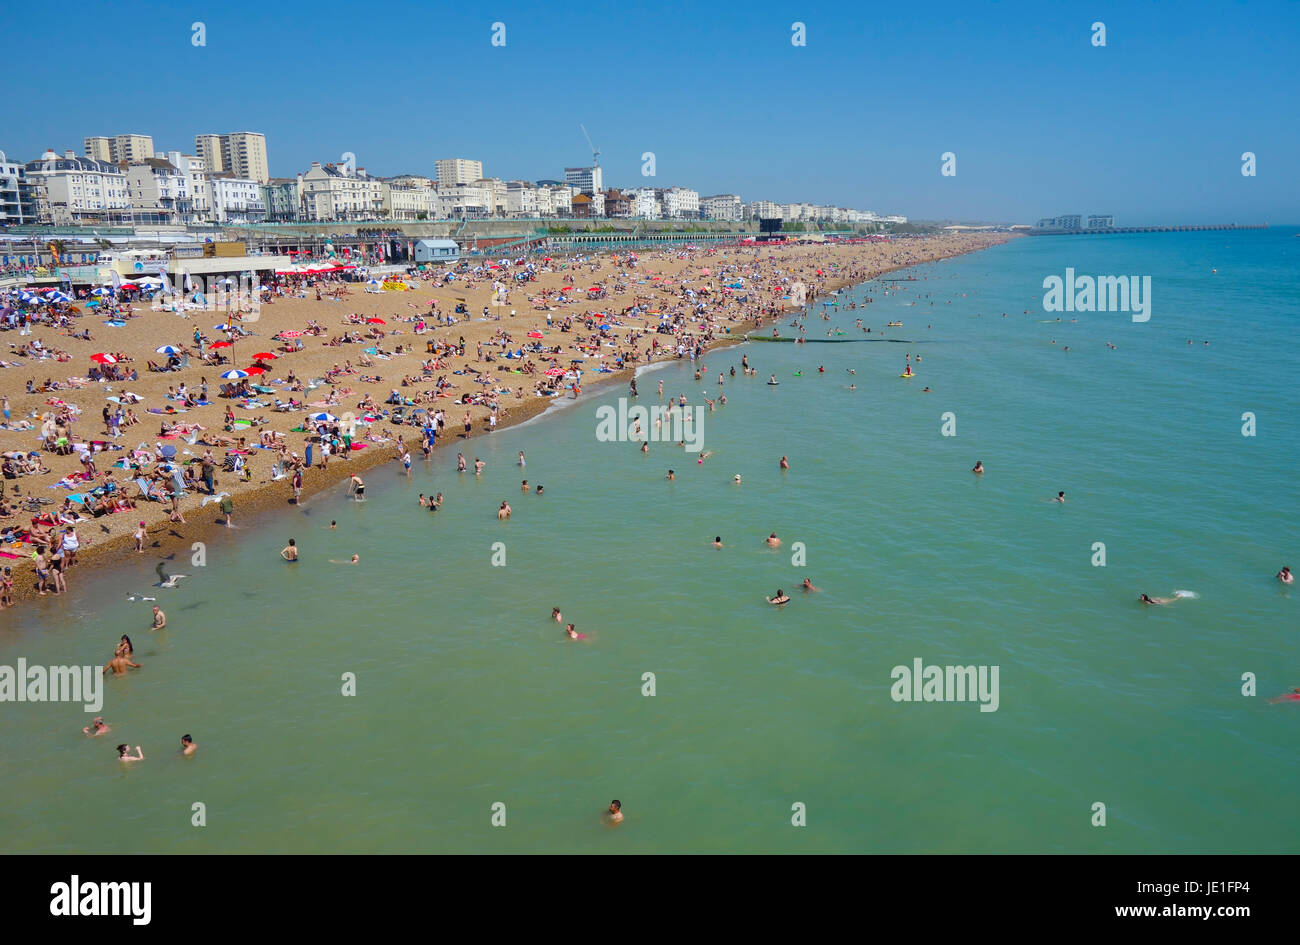 Brighton Beach with people on the beach in recent summer heatwave. - Stock Image